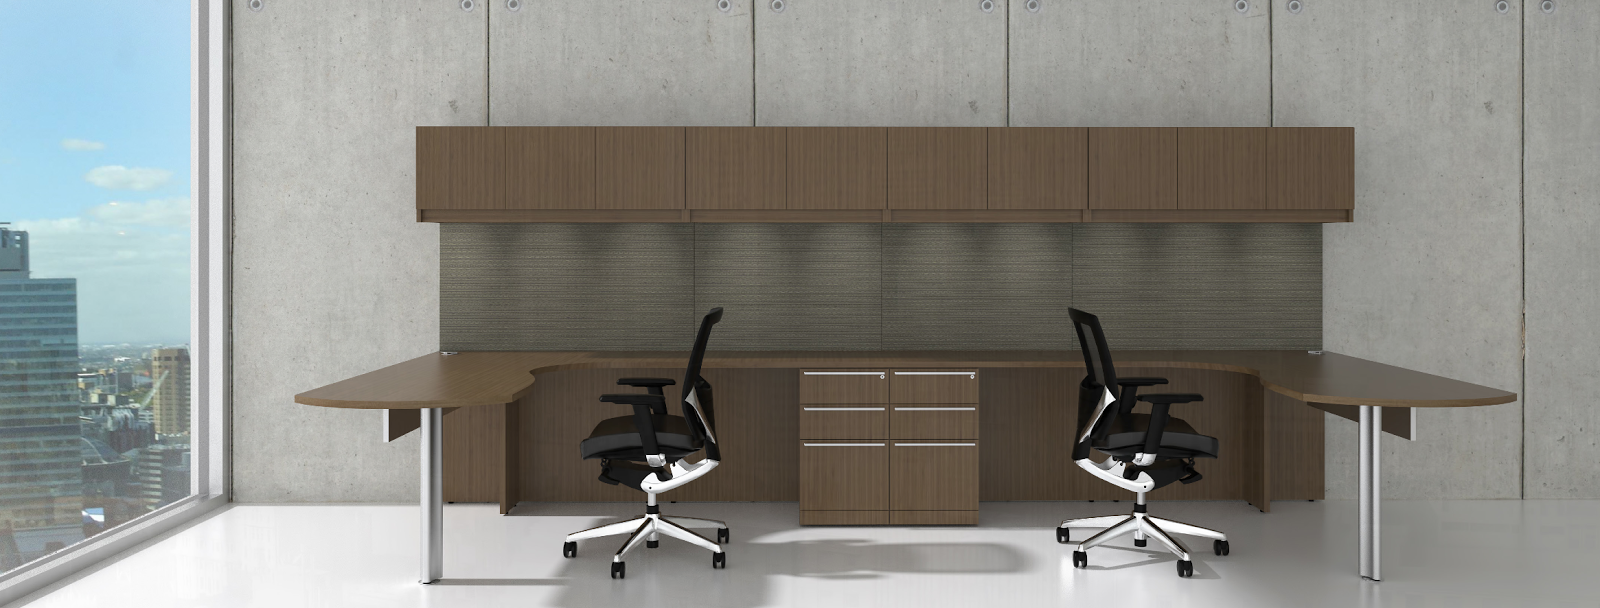 Verde Workstation by Cherryman